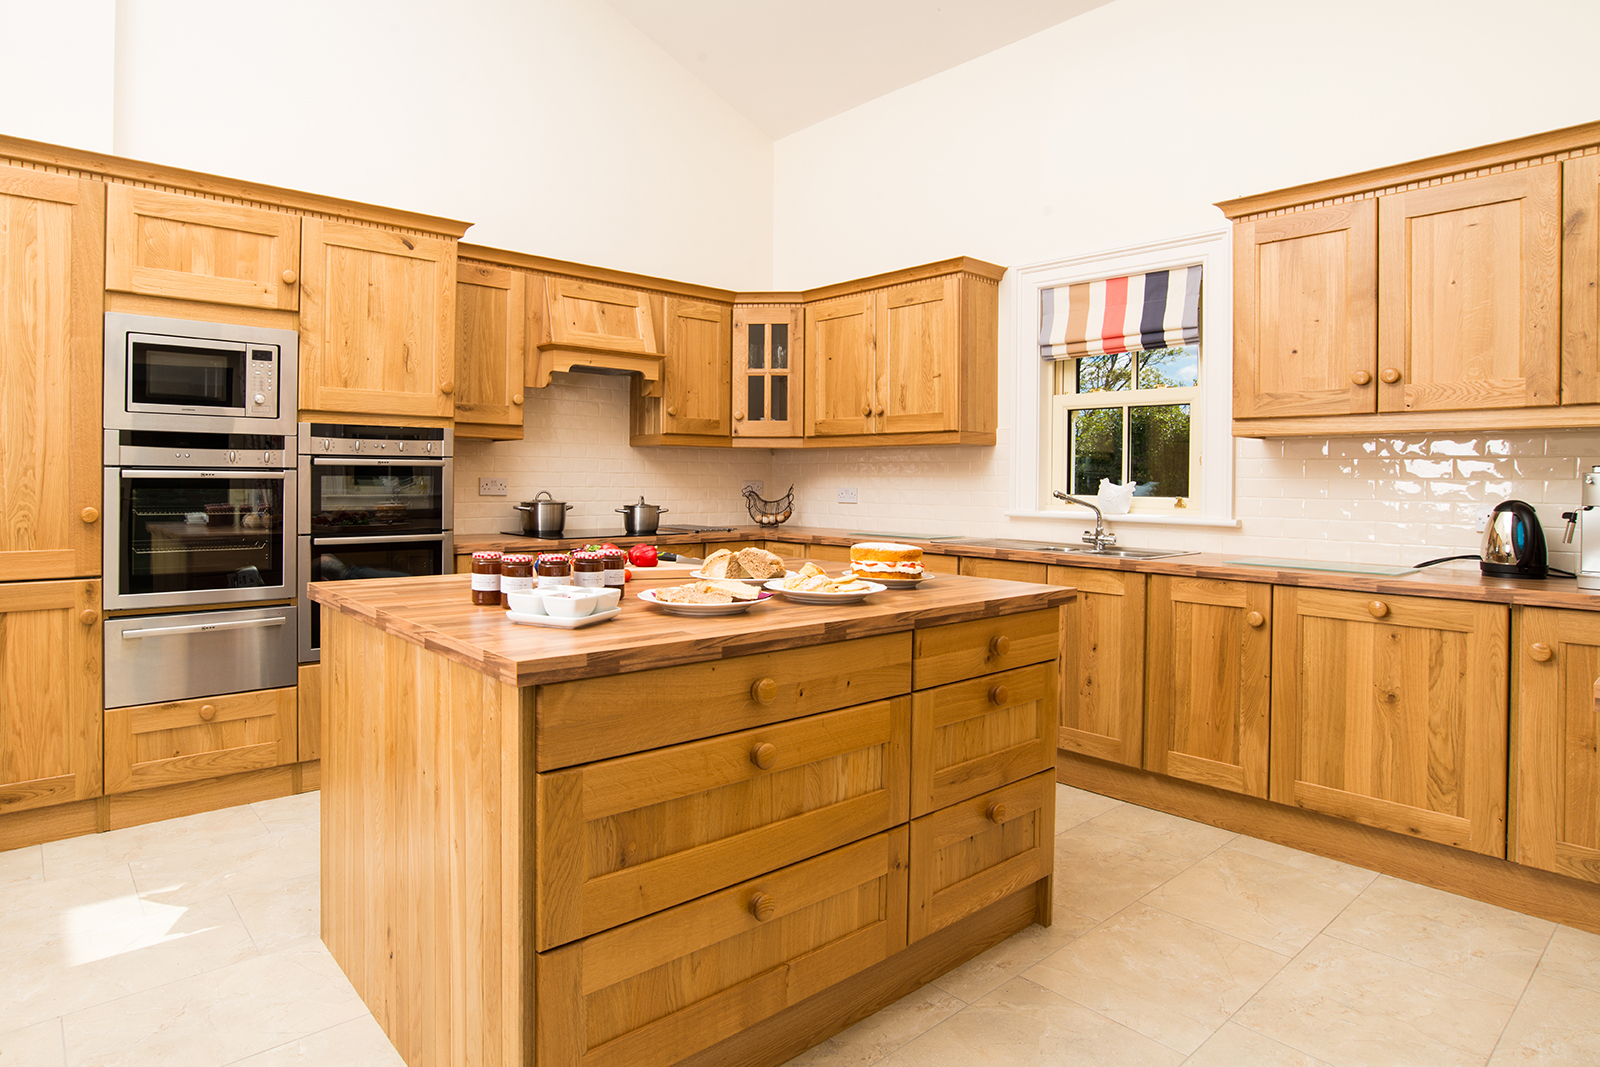 Wooden modern kitchen at self catering home